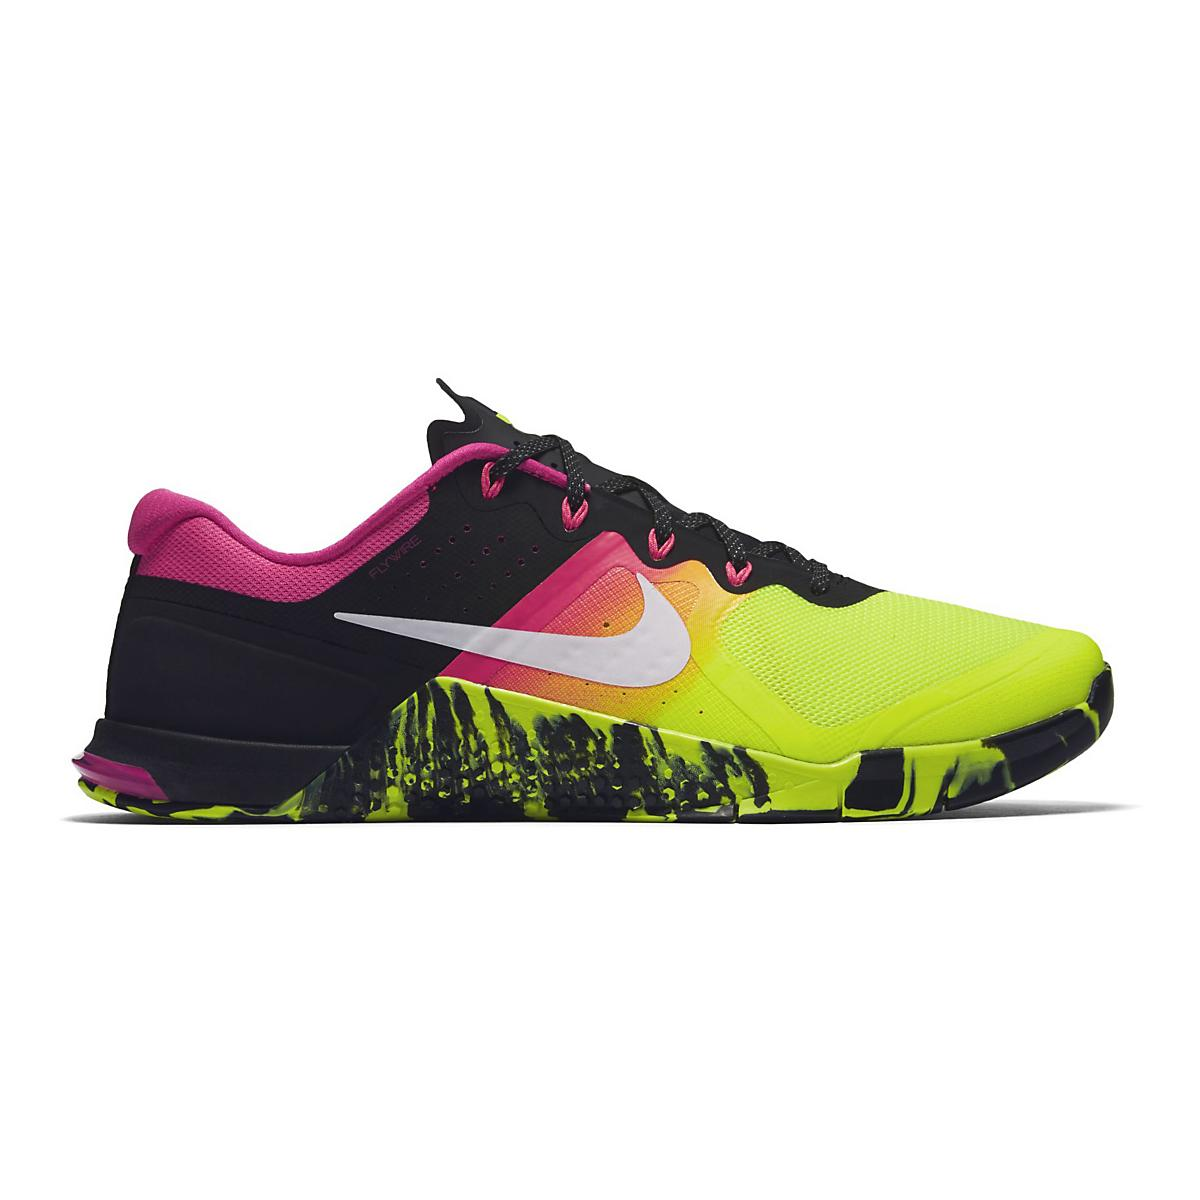 premium selection 225bc d6e95 Men s Nike MetCon 2 at Road Runner Sports